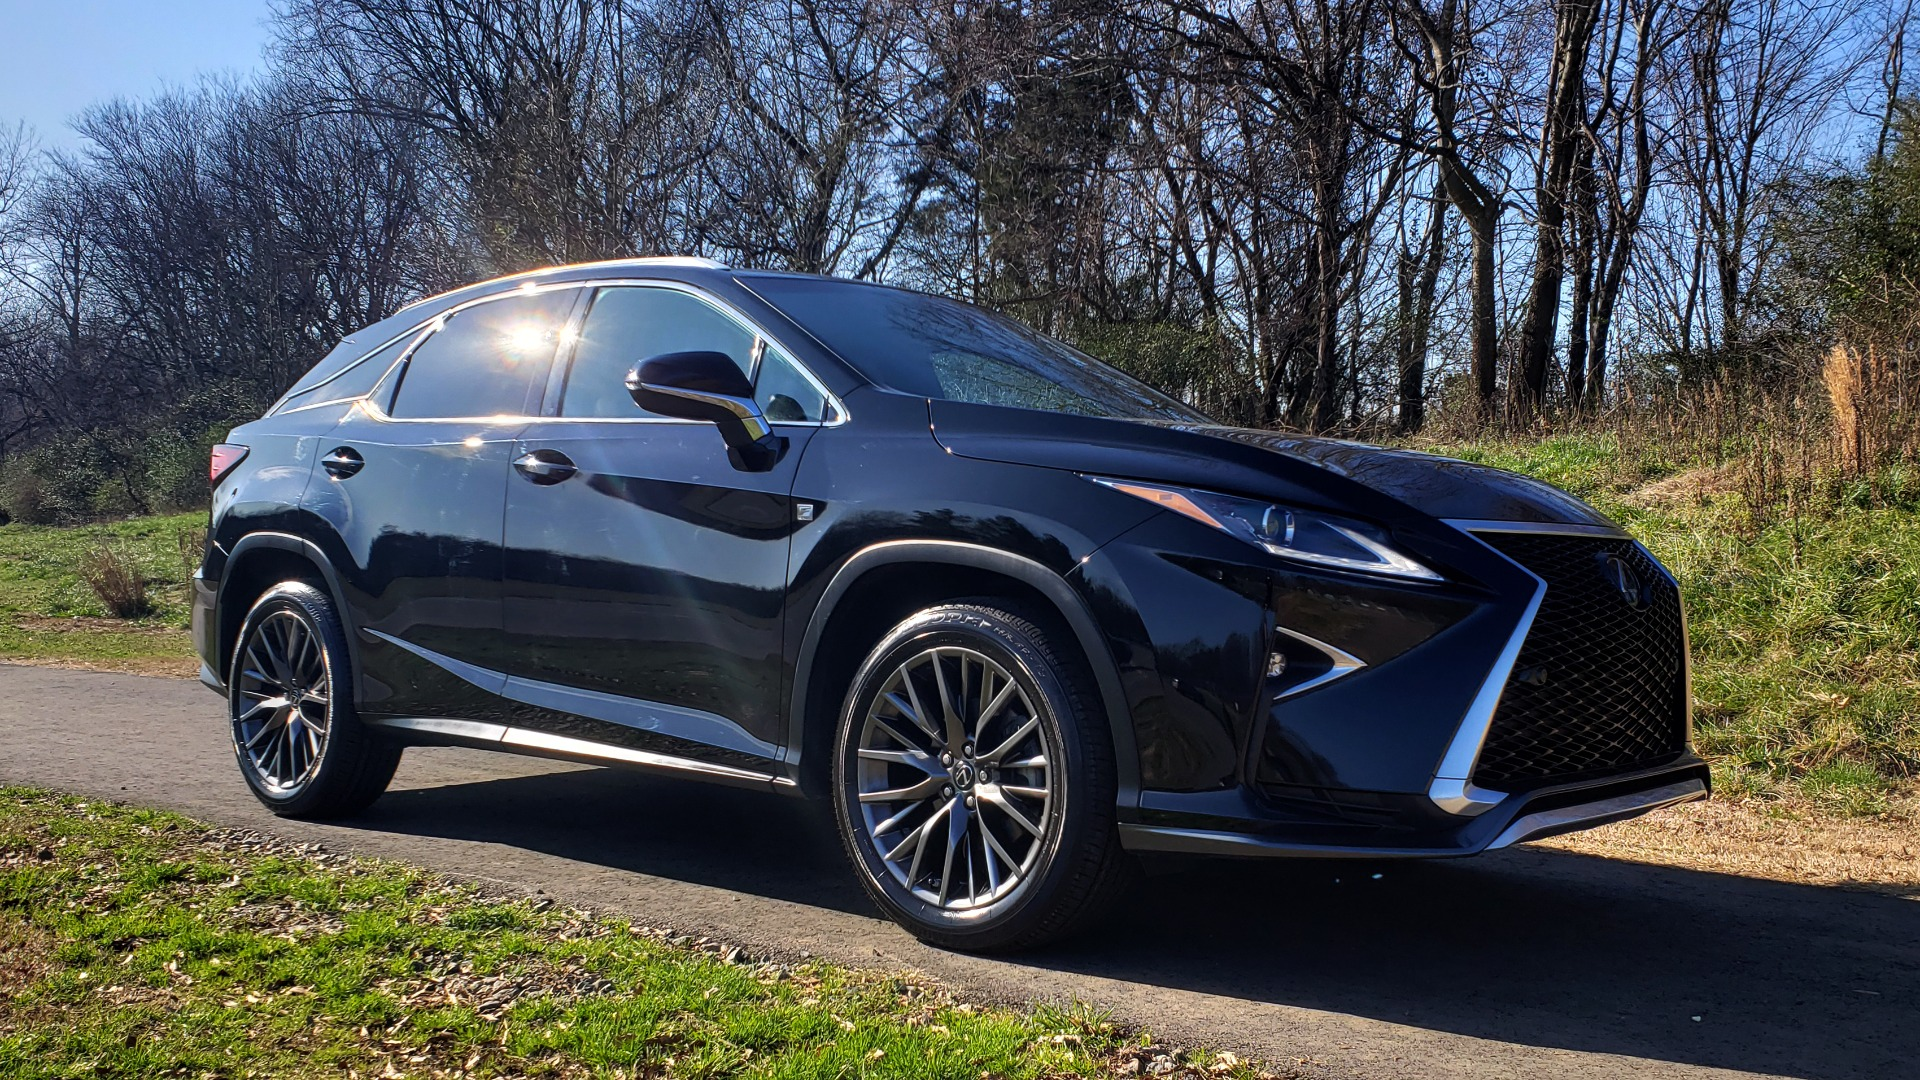 Used 2017 Lexus RX350 AWD F-SPORT / NAV / SUNROOF / BSM / PARK ASST / TOWING / REARVIE for sale Sold at Formula Imports in Charlotte NC 28227 4